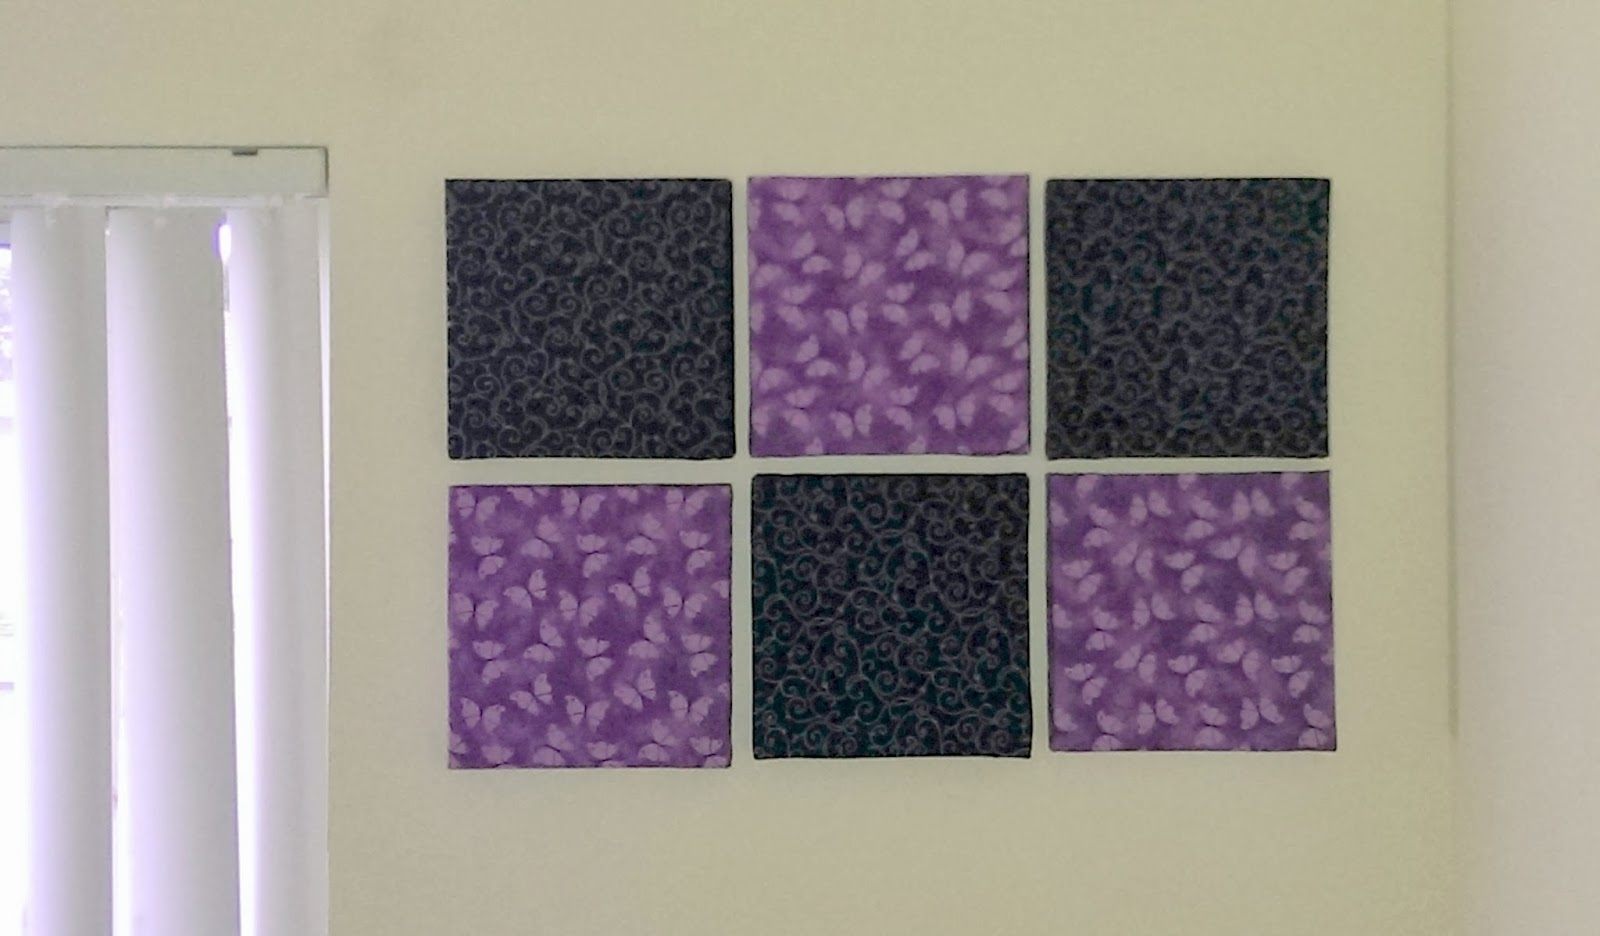 Diy Addiction: Wall Art - Fabric Covered Canvas within Latest Purple Fabric Wall Art